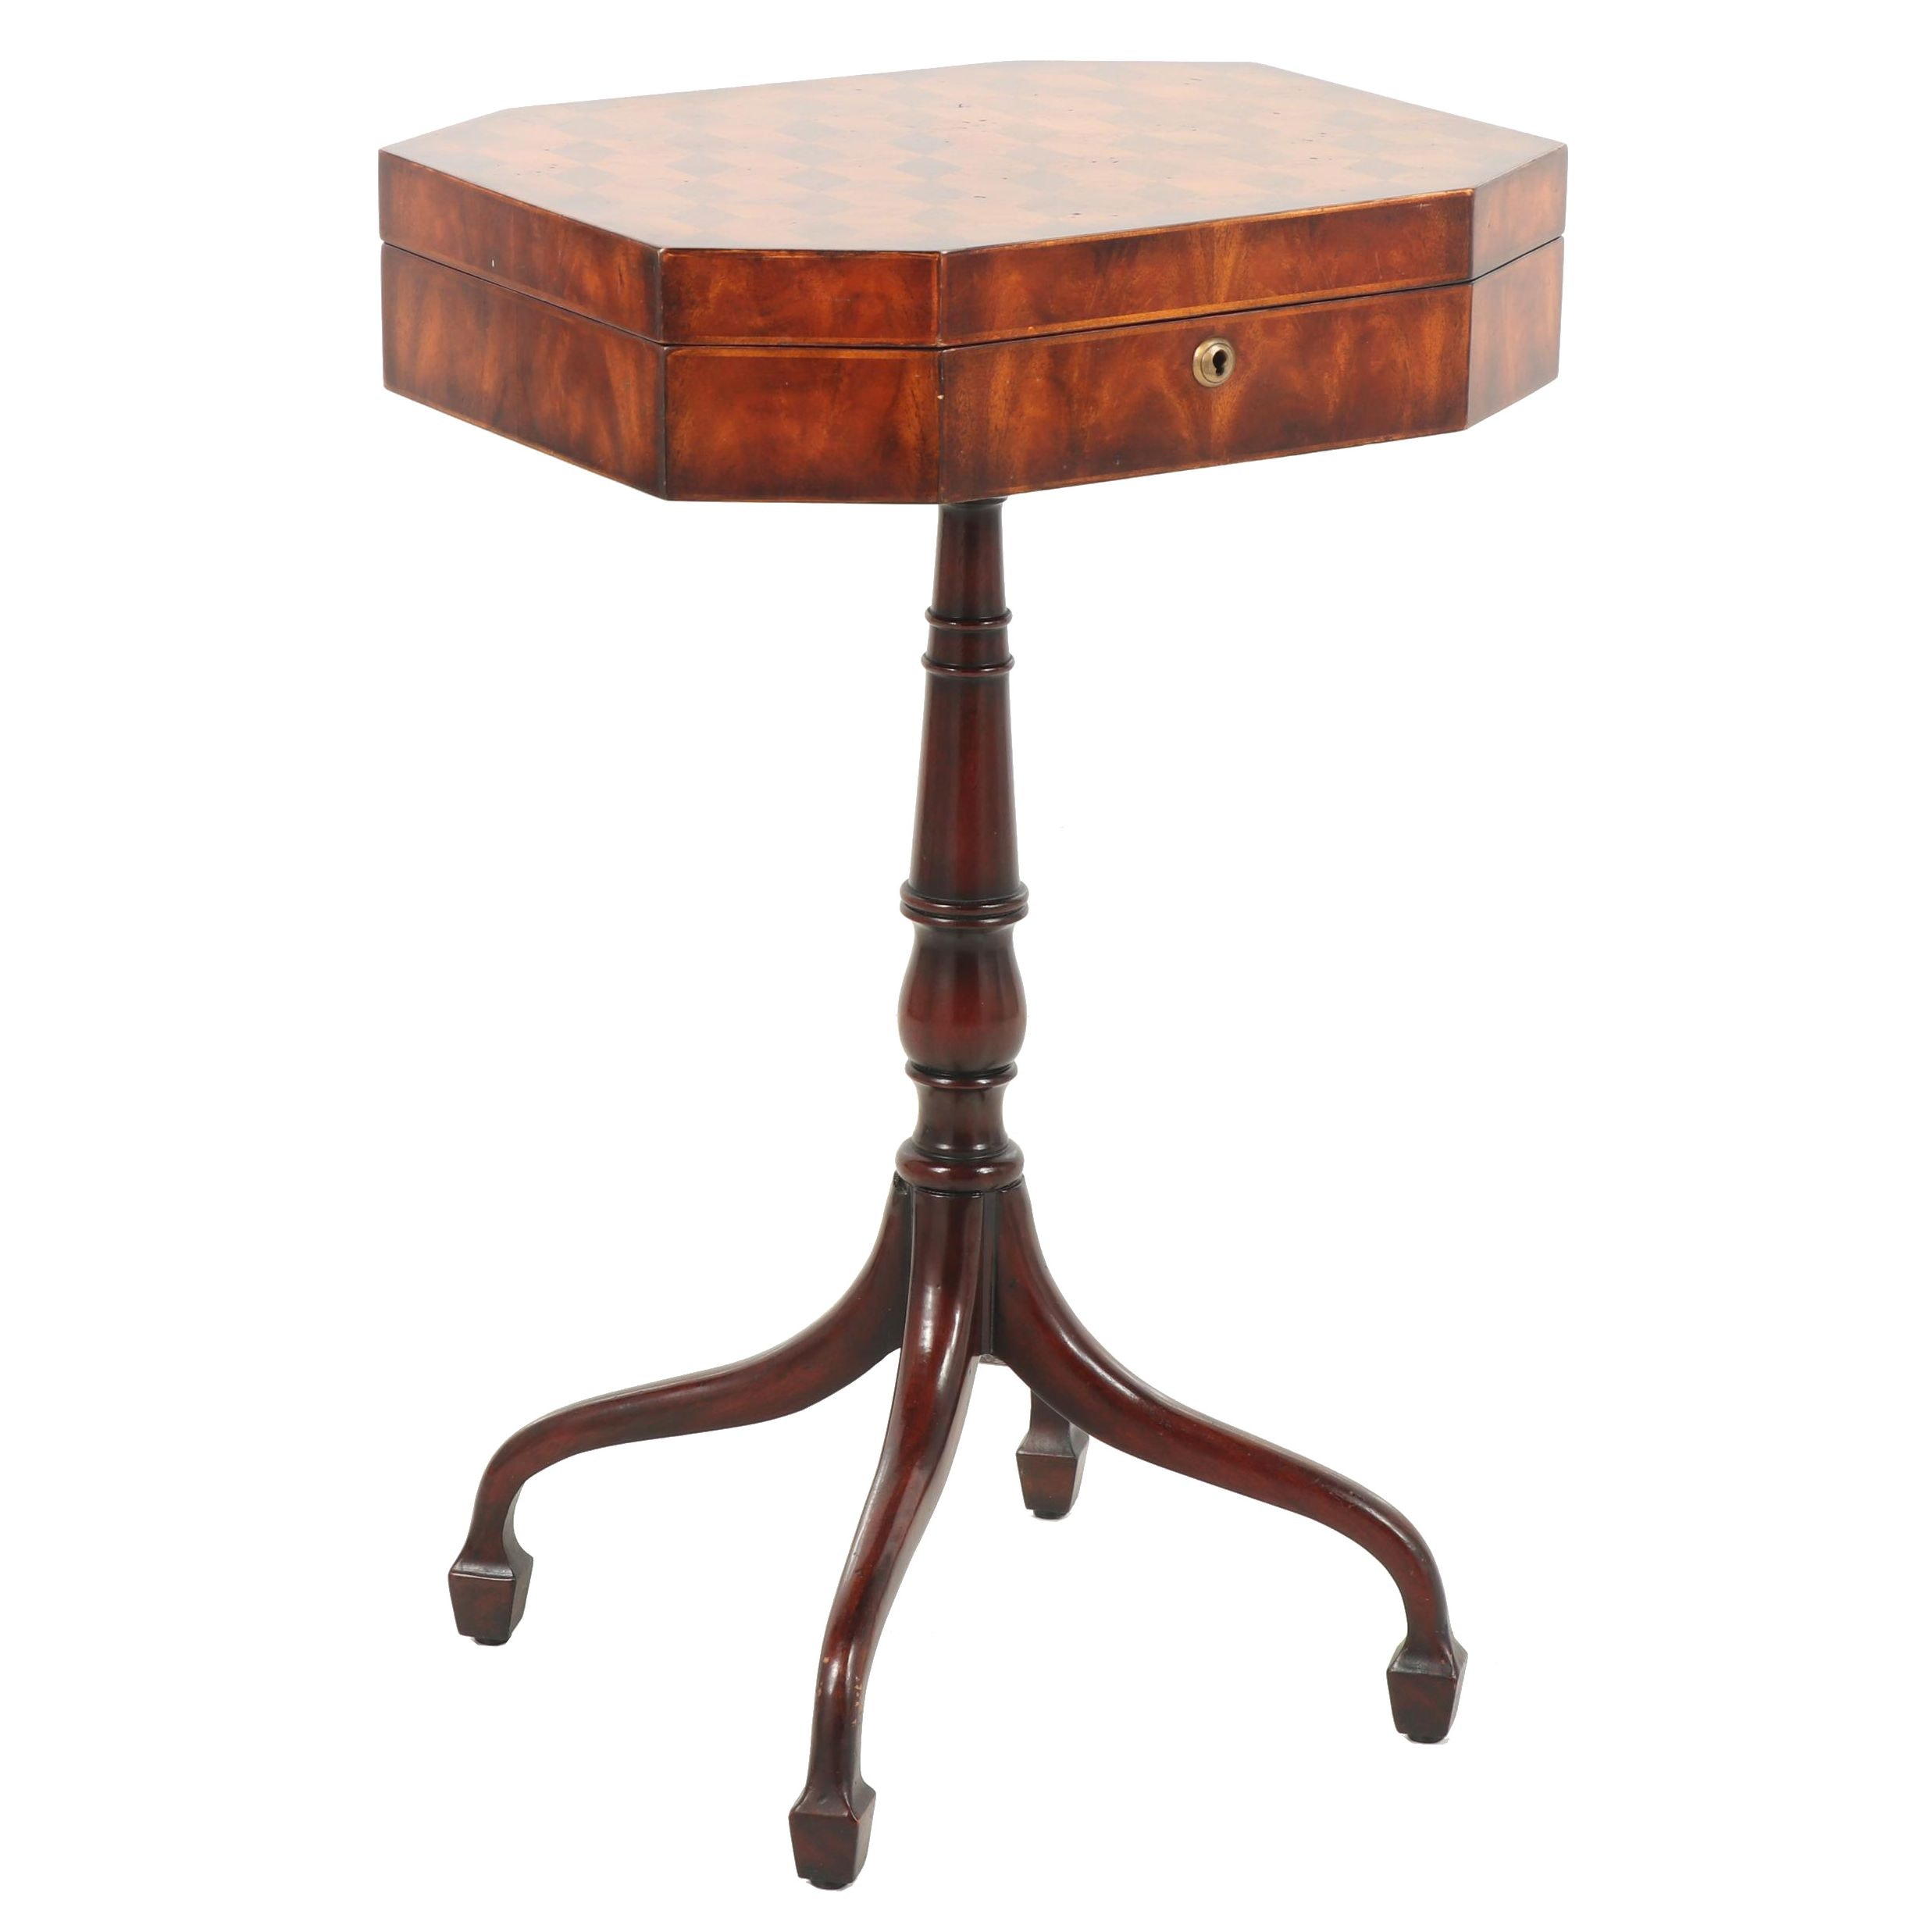 George IV Style Specimen Wood Work Table, Circa 1950